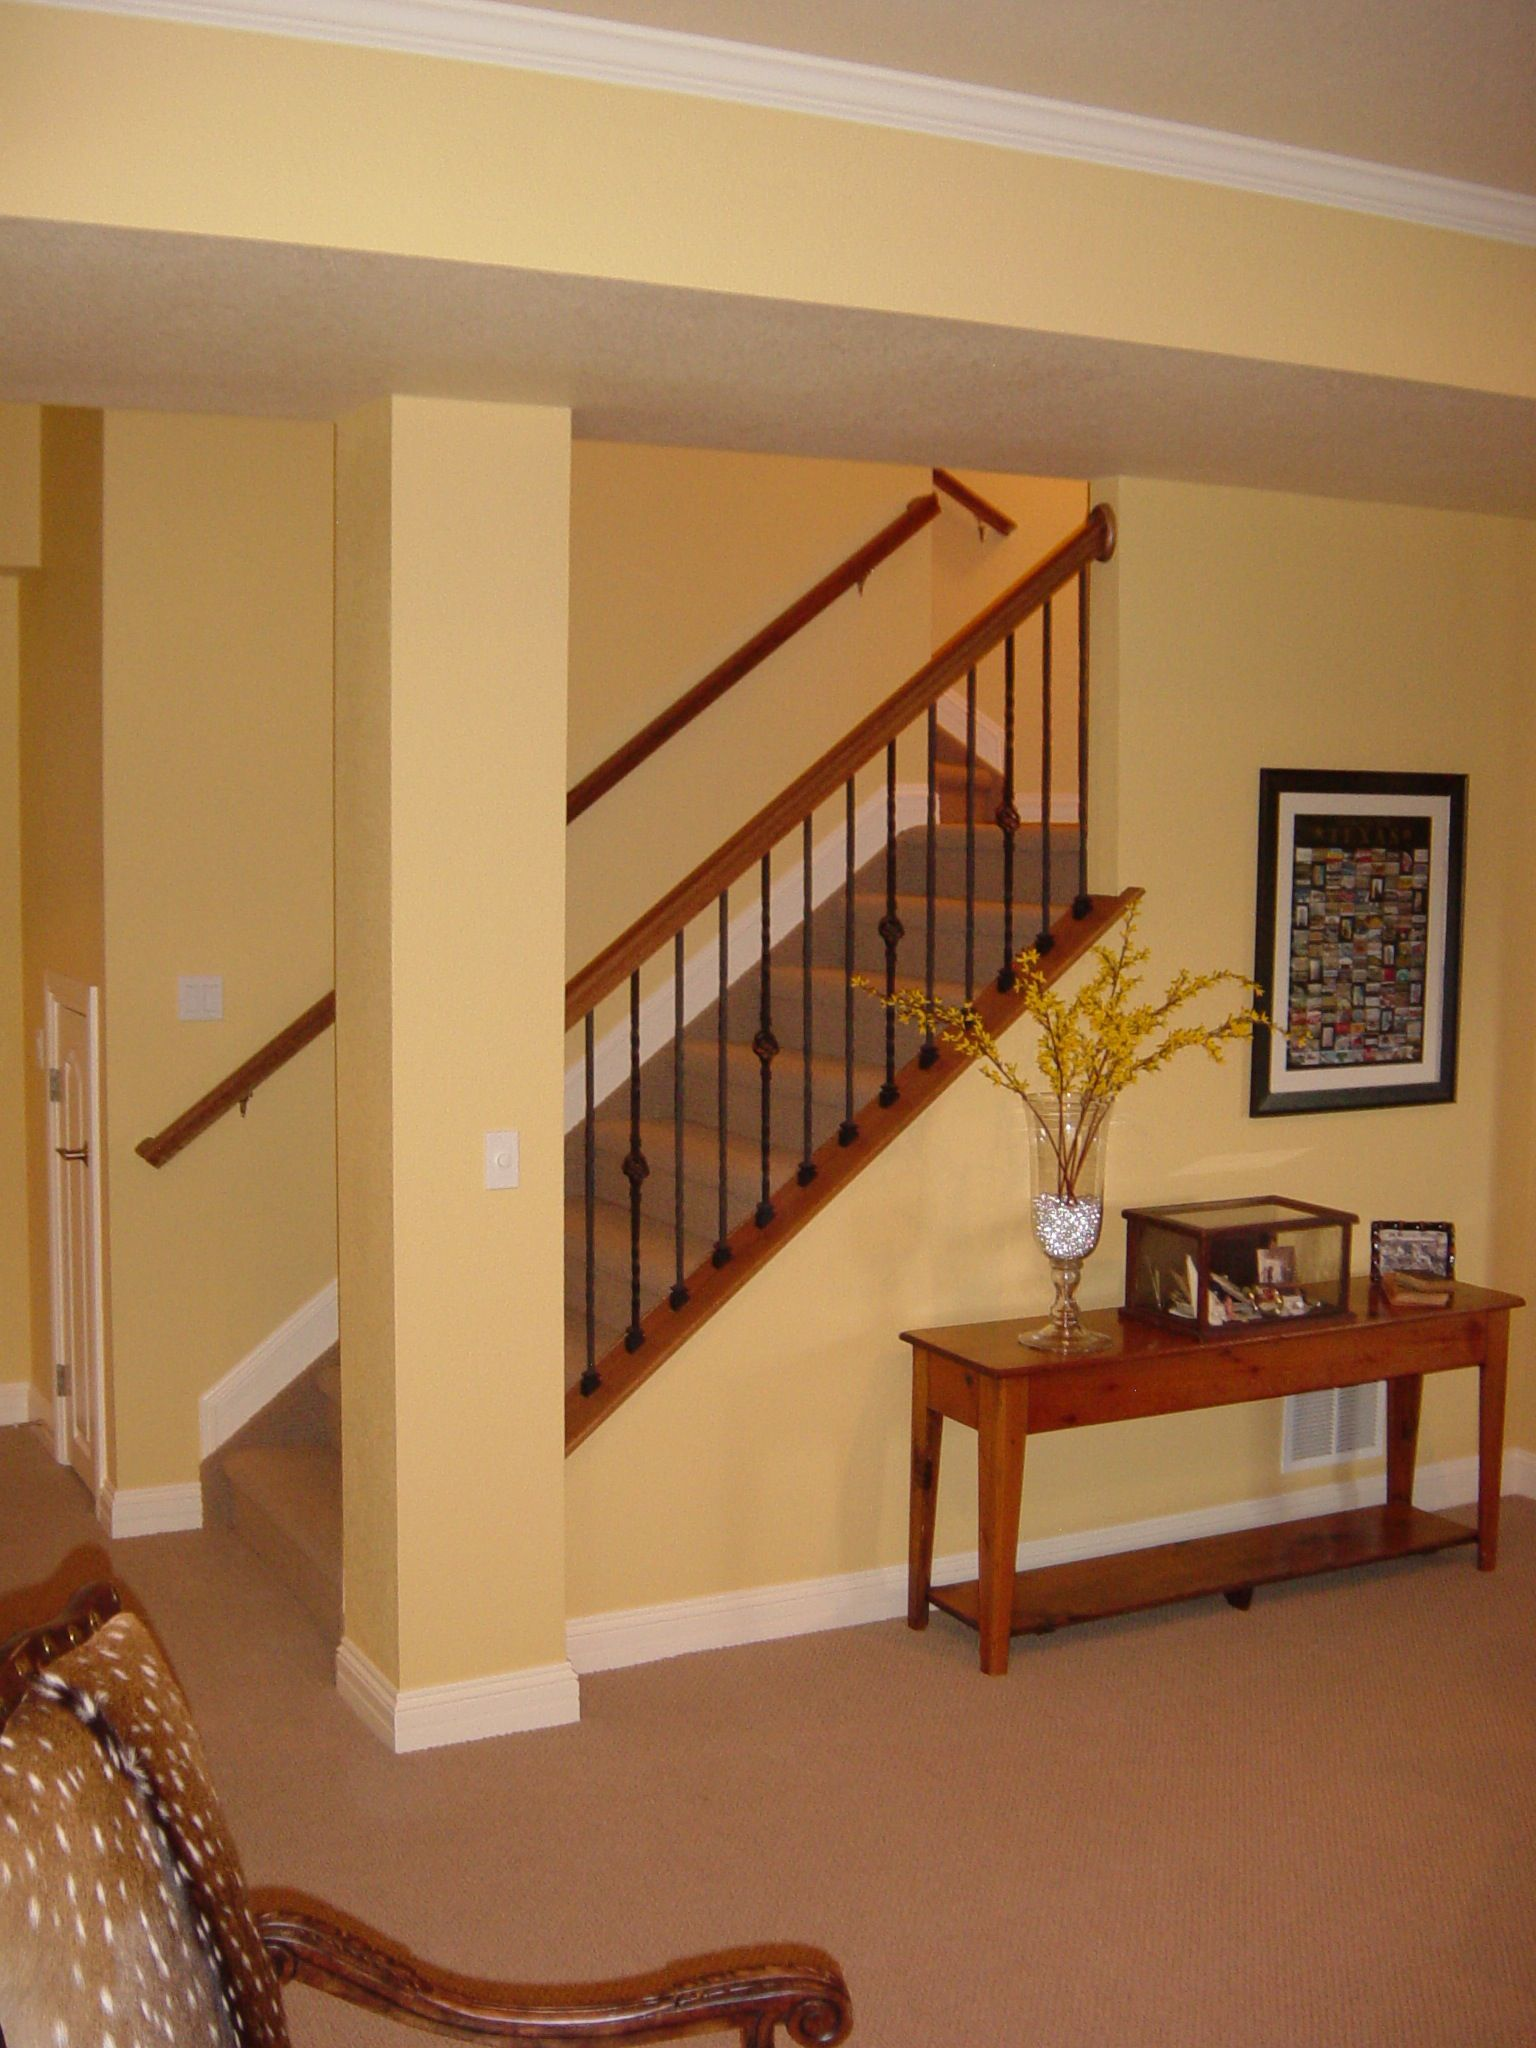 open basement stairs. When homes are constructed with unfinished basements  the basement stairs not typically given aesthetic